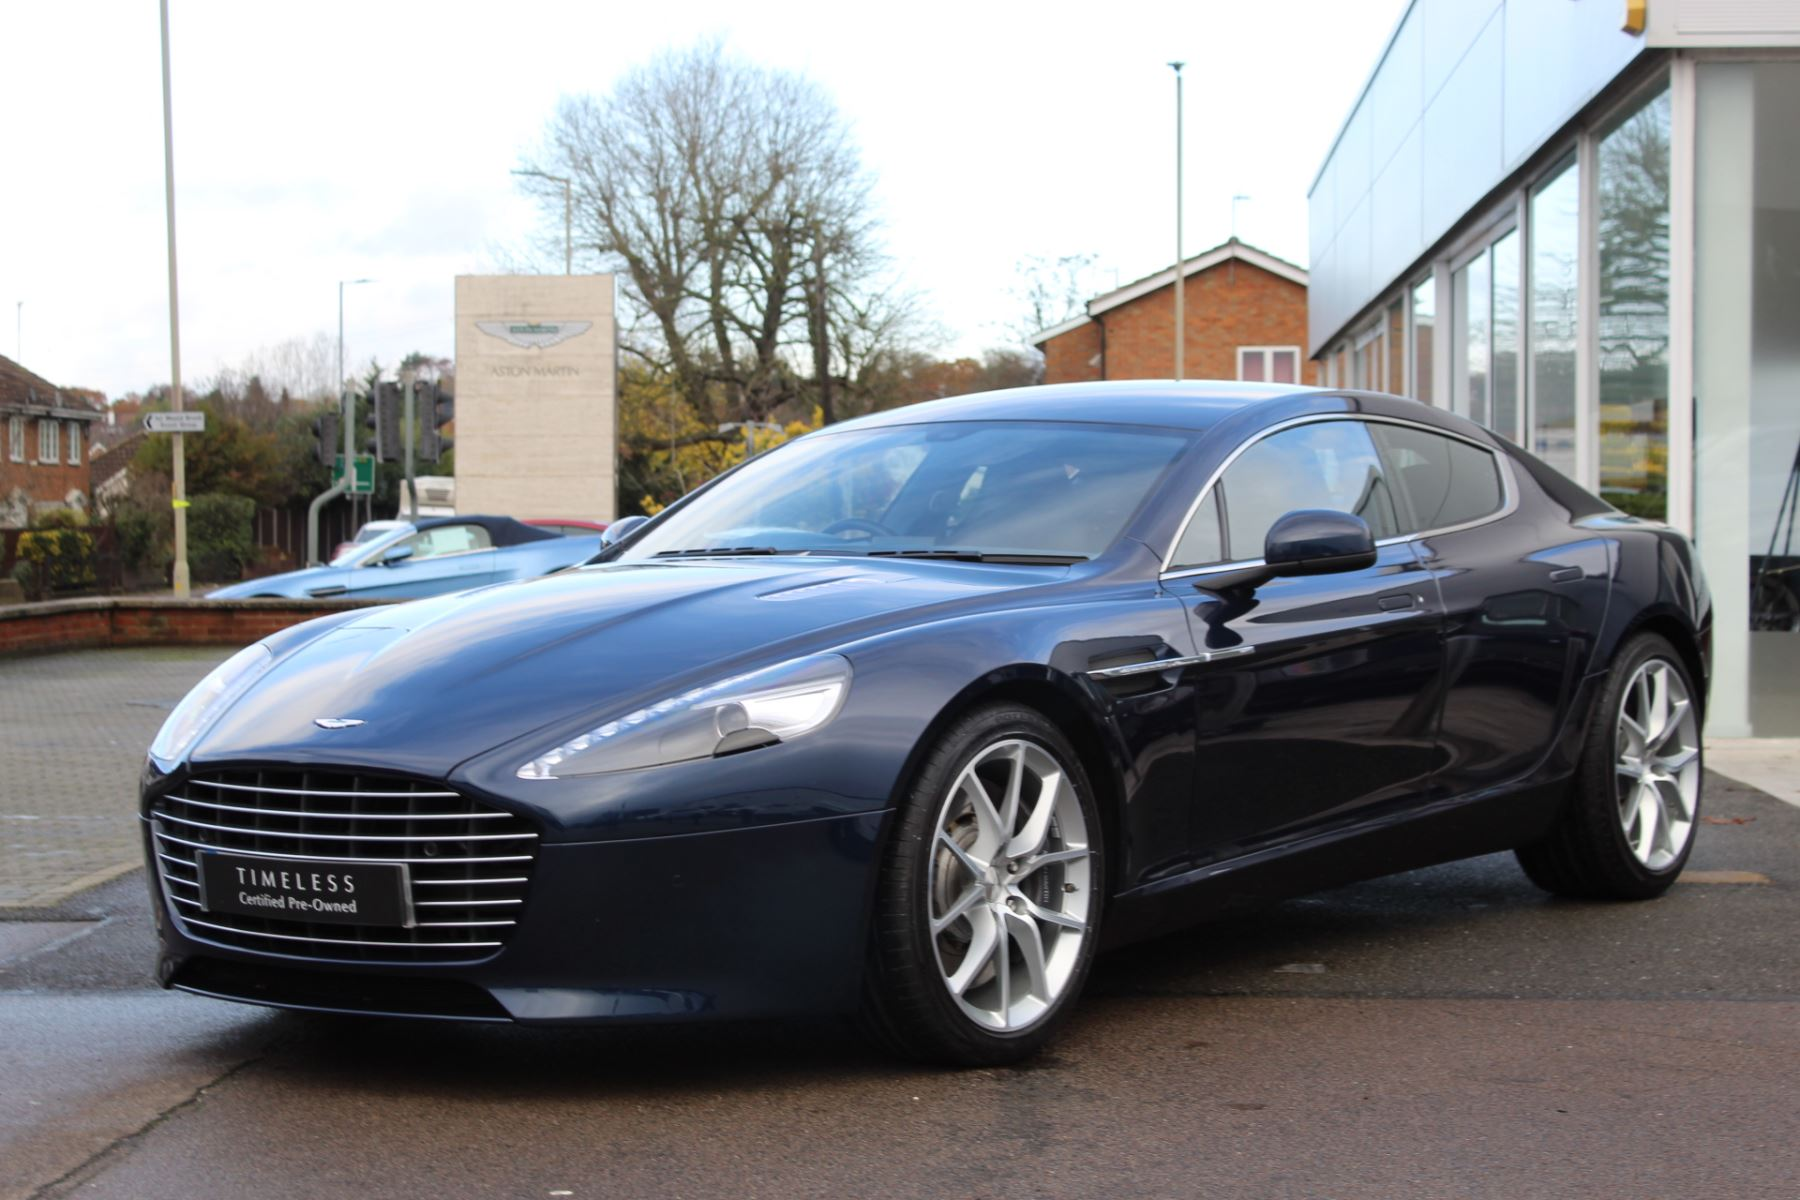 Aston Martin Rapide S V12 [552] 4dr Touchtronic III image 10